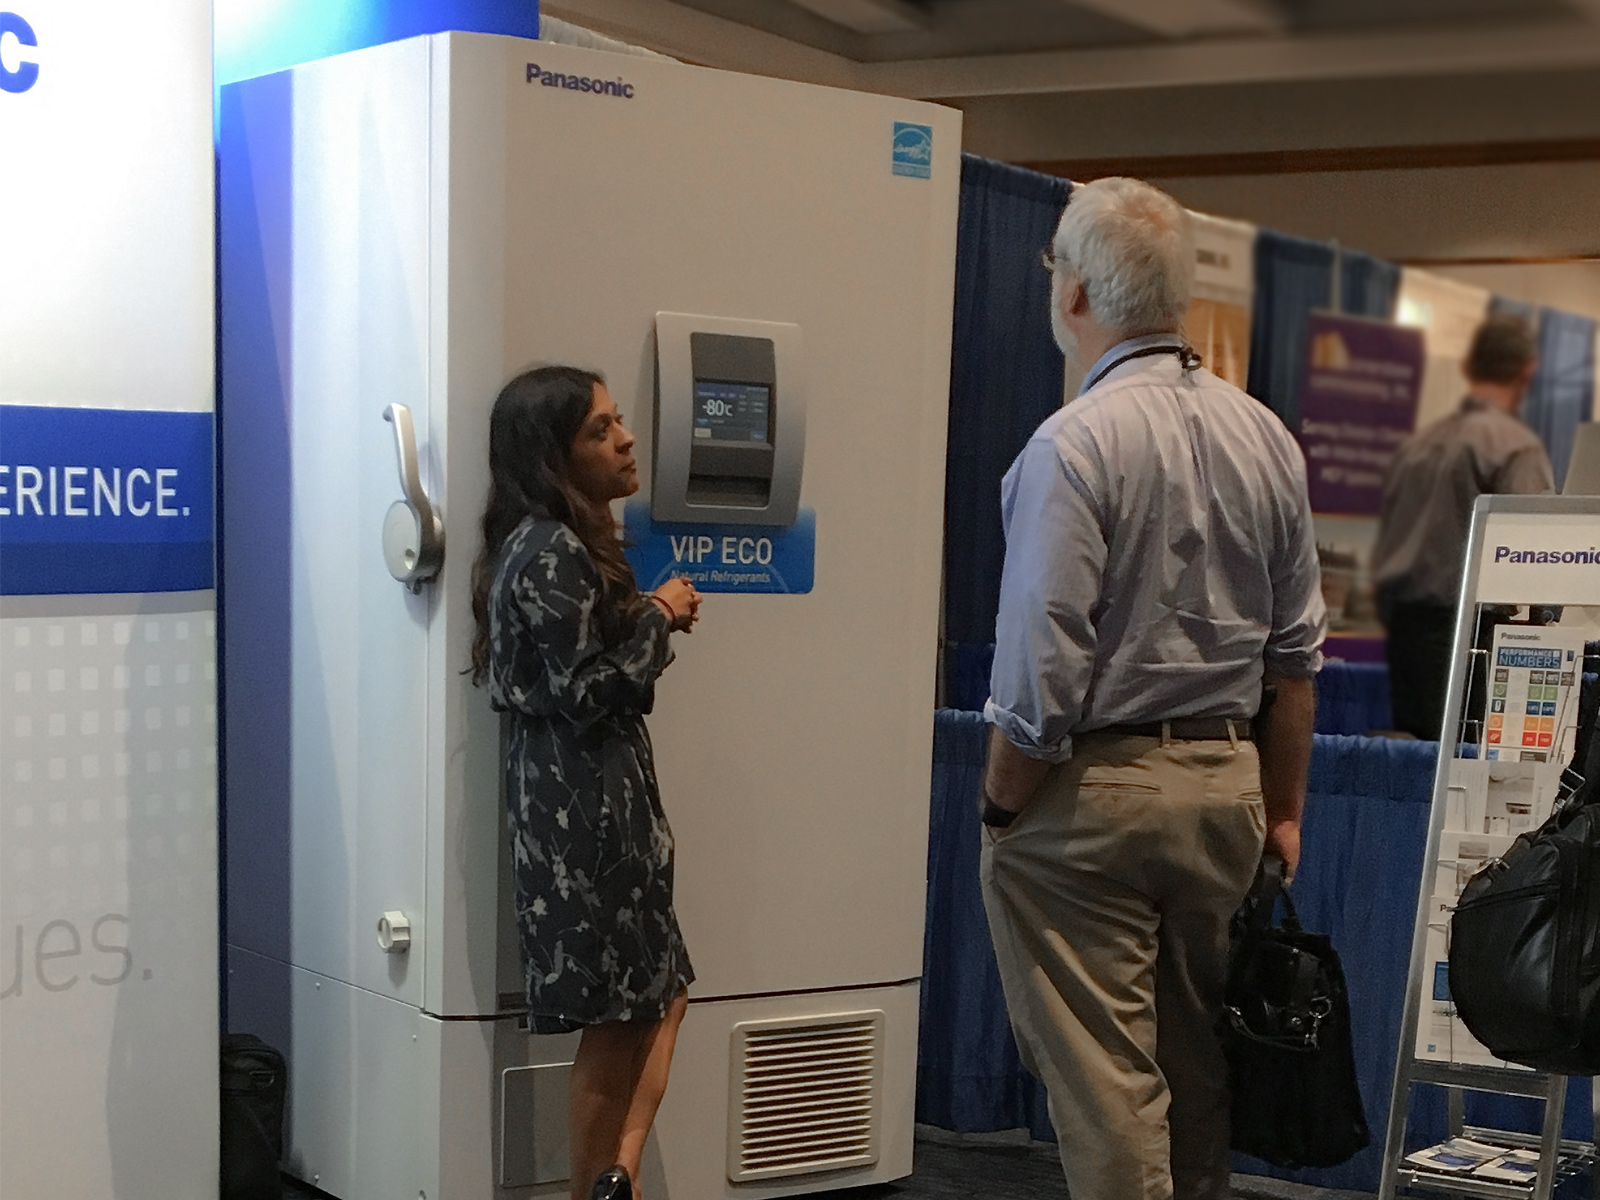 Check out this link - Panasonic Healthcare 2017-10-18 17:55